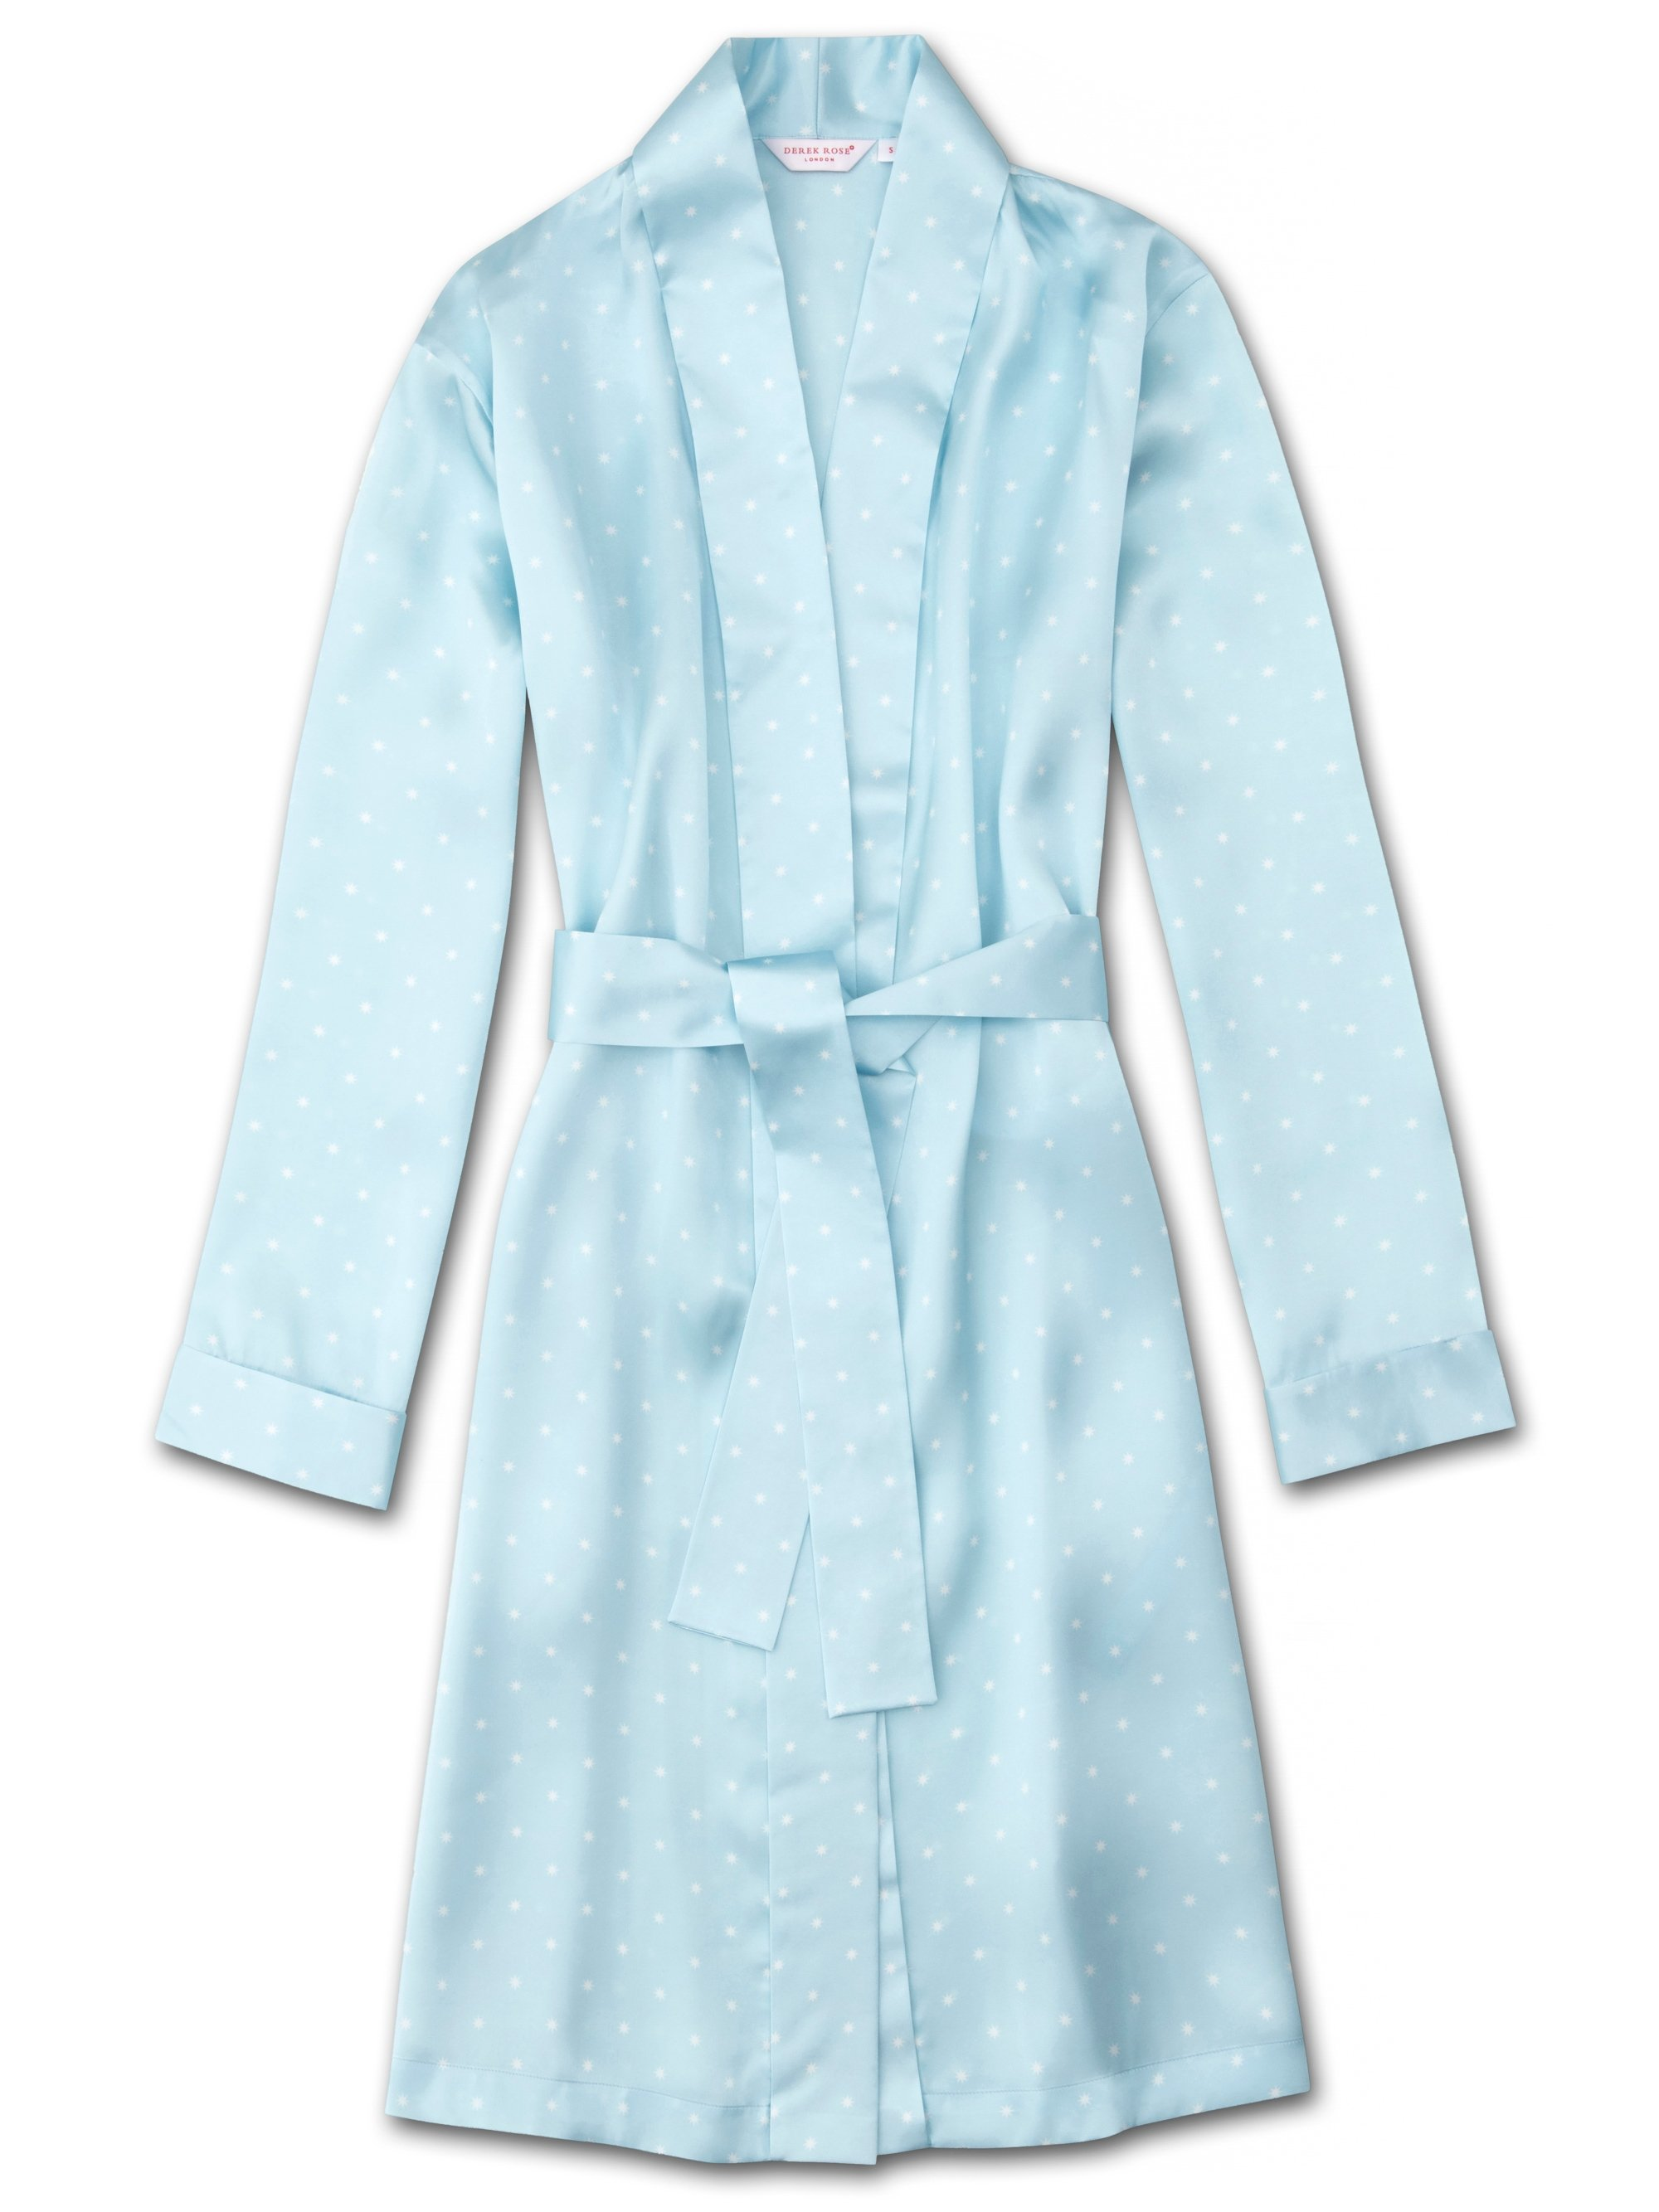 Women's Dressing Gown Brindisi 54 Pure Silk Satin Blue